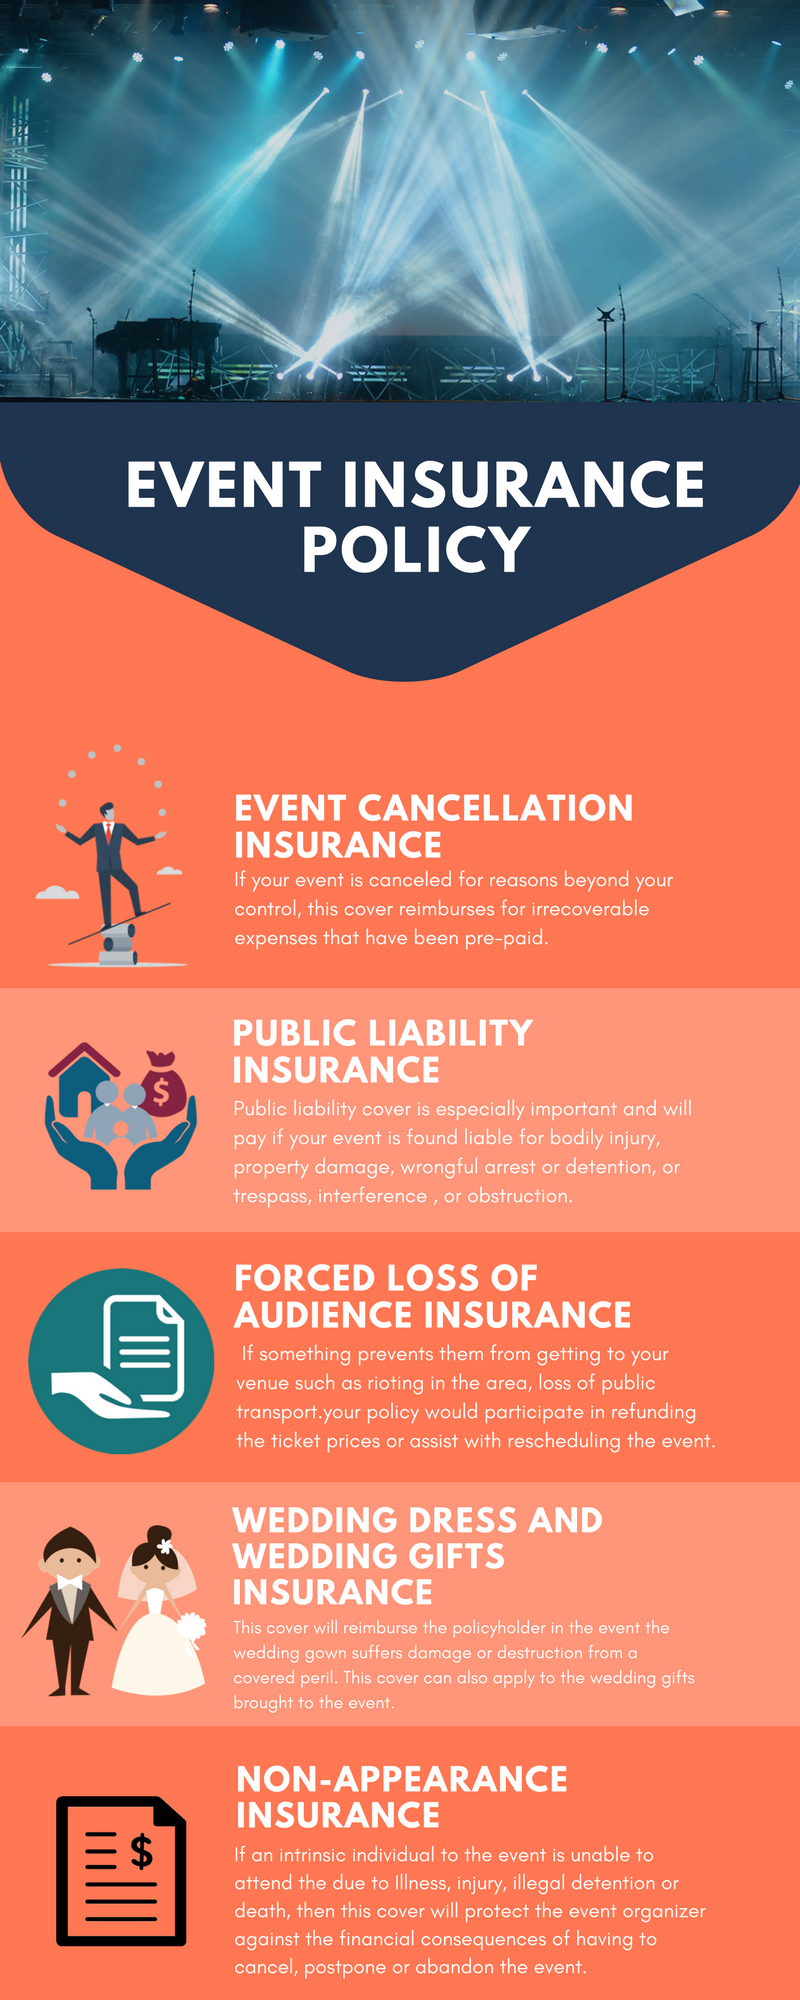 Event Insurance Hong Kong Insurance Business Insurance Event